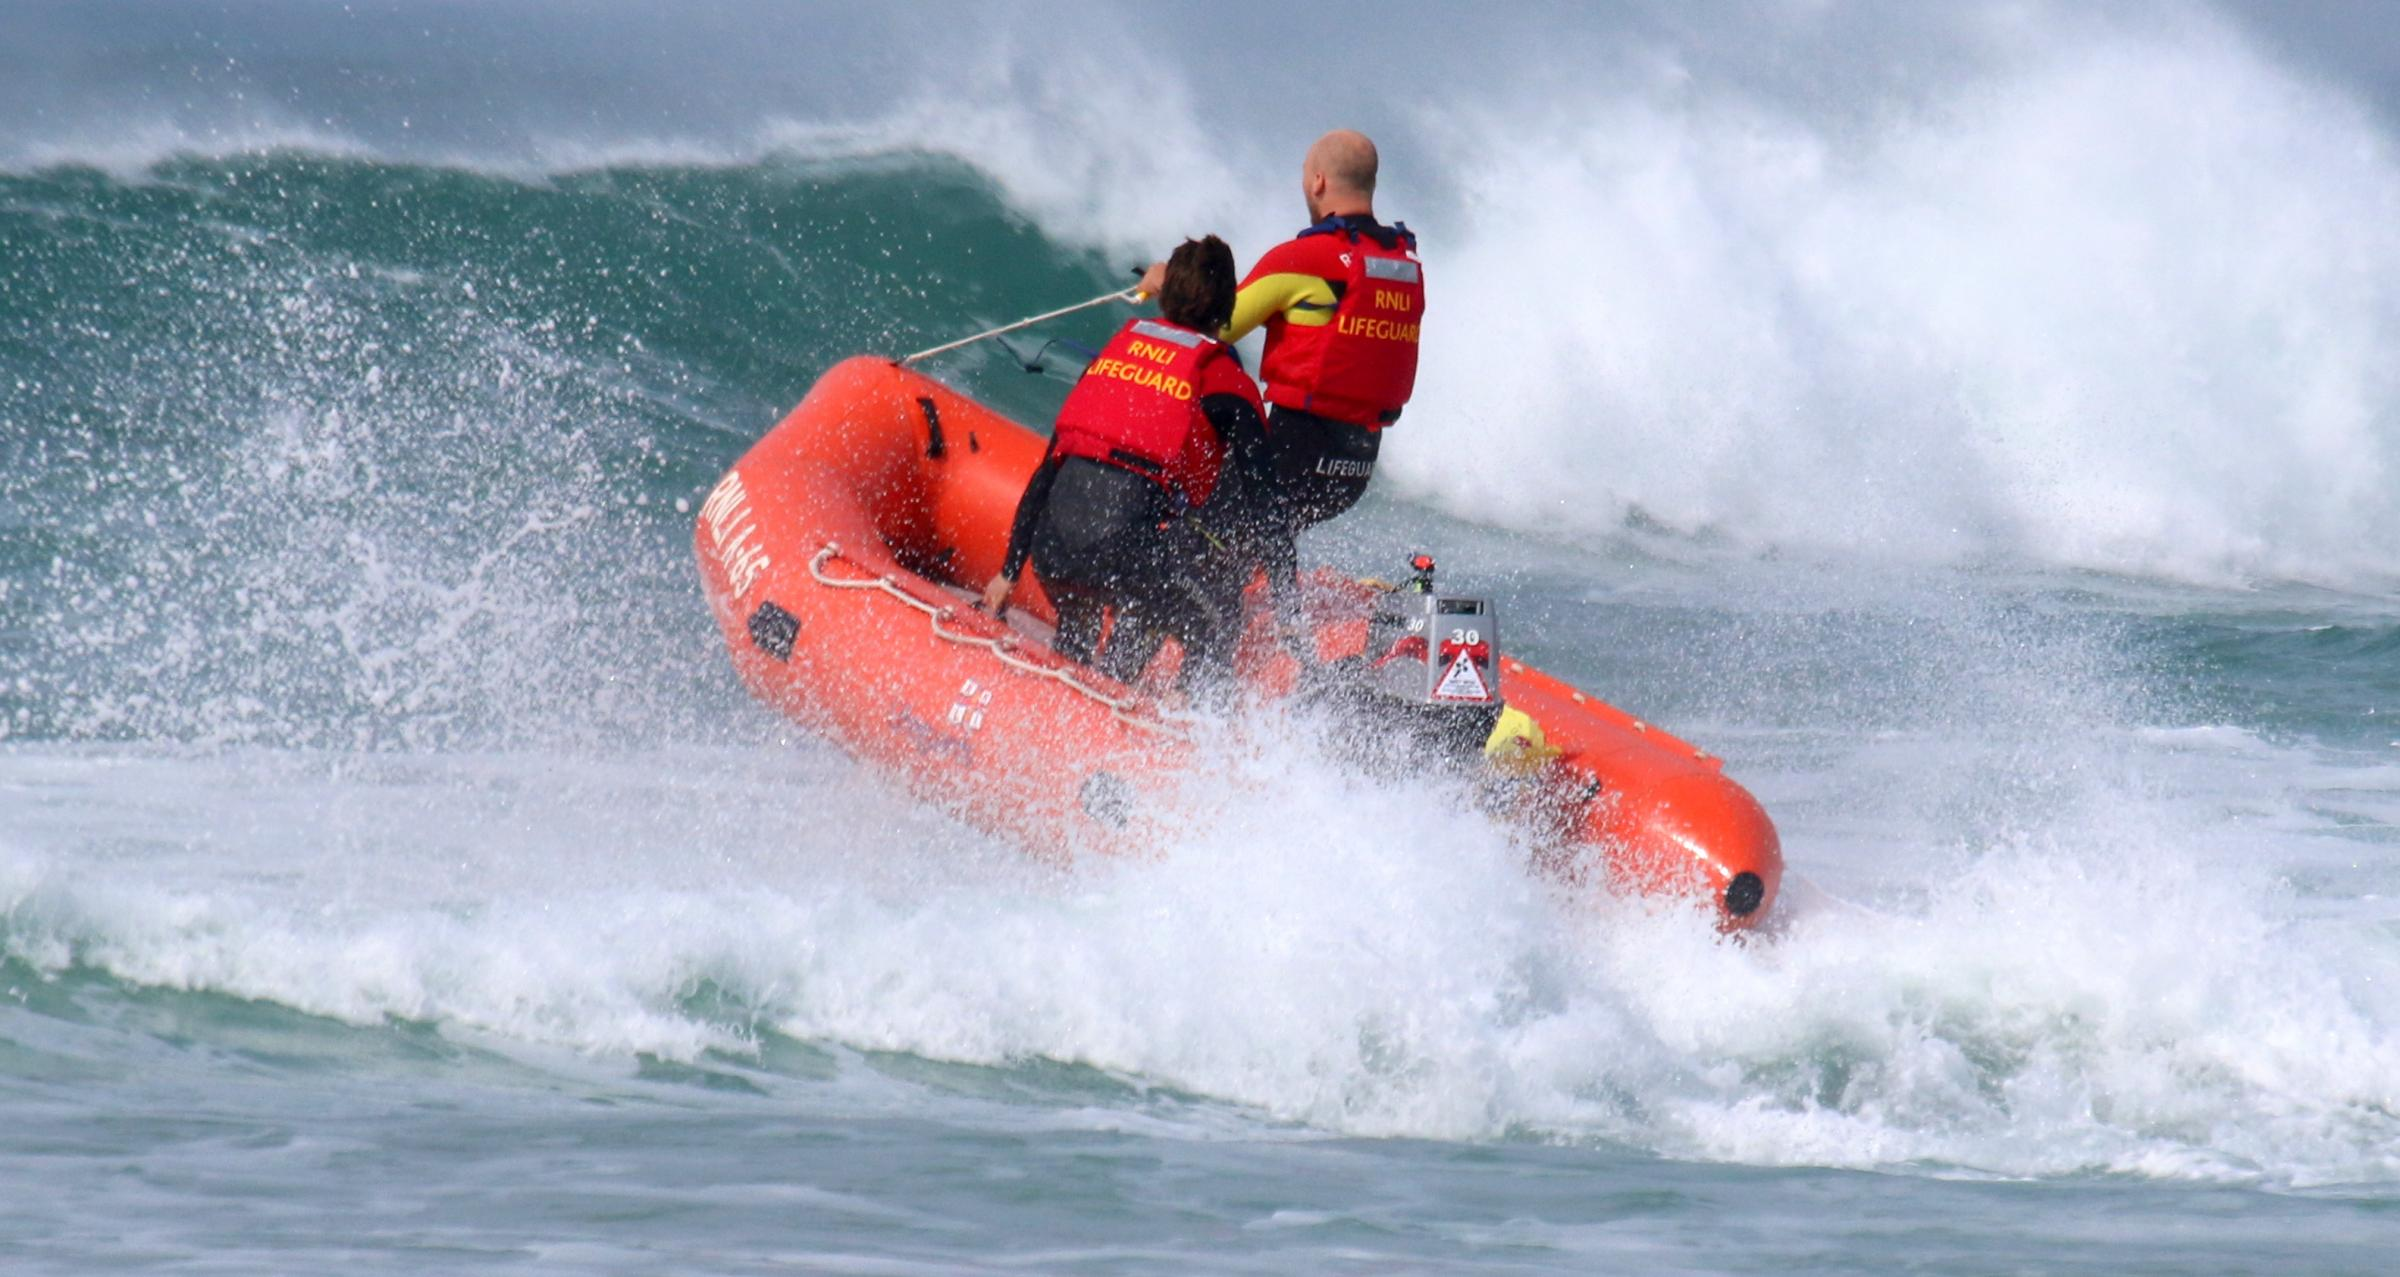 Surfer rescued after getting caught in strong rip tide